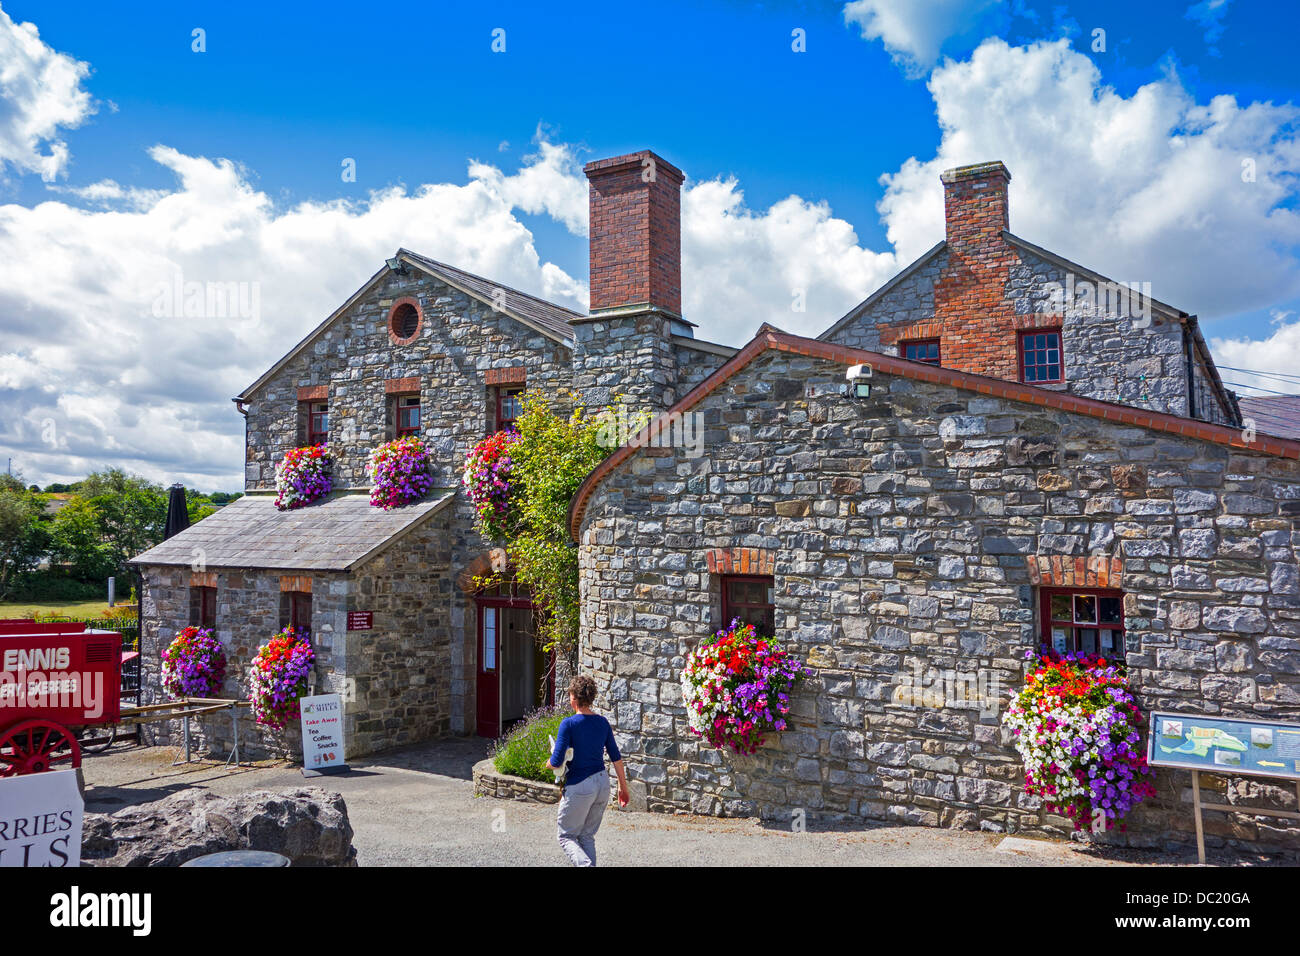 Skerries Mills Museum, county Dublin, Ireland - restored old mill and Bakery Stock Photo